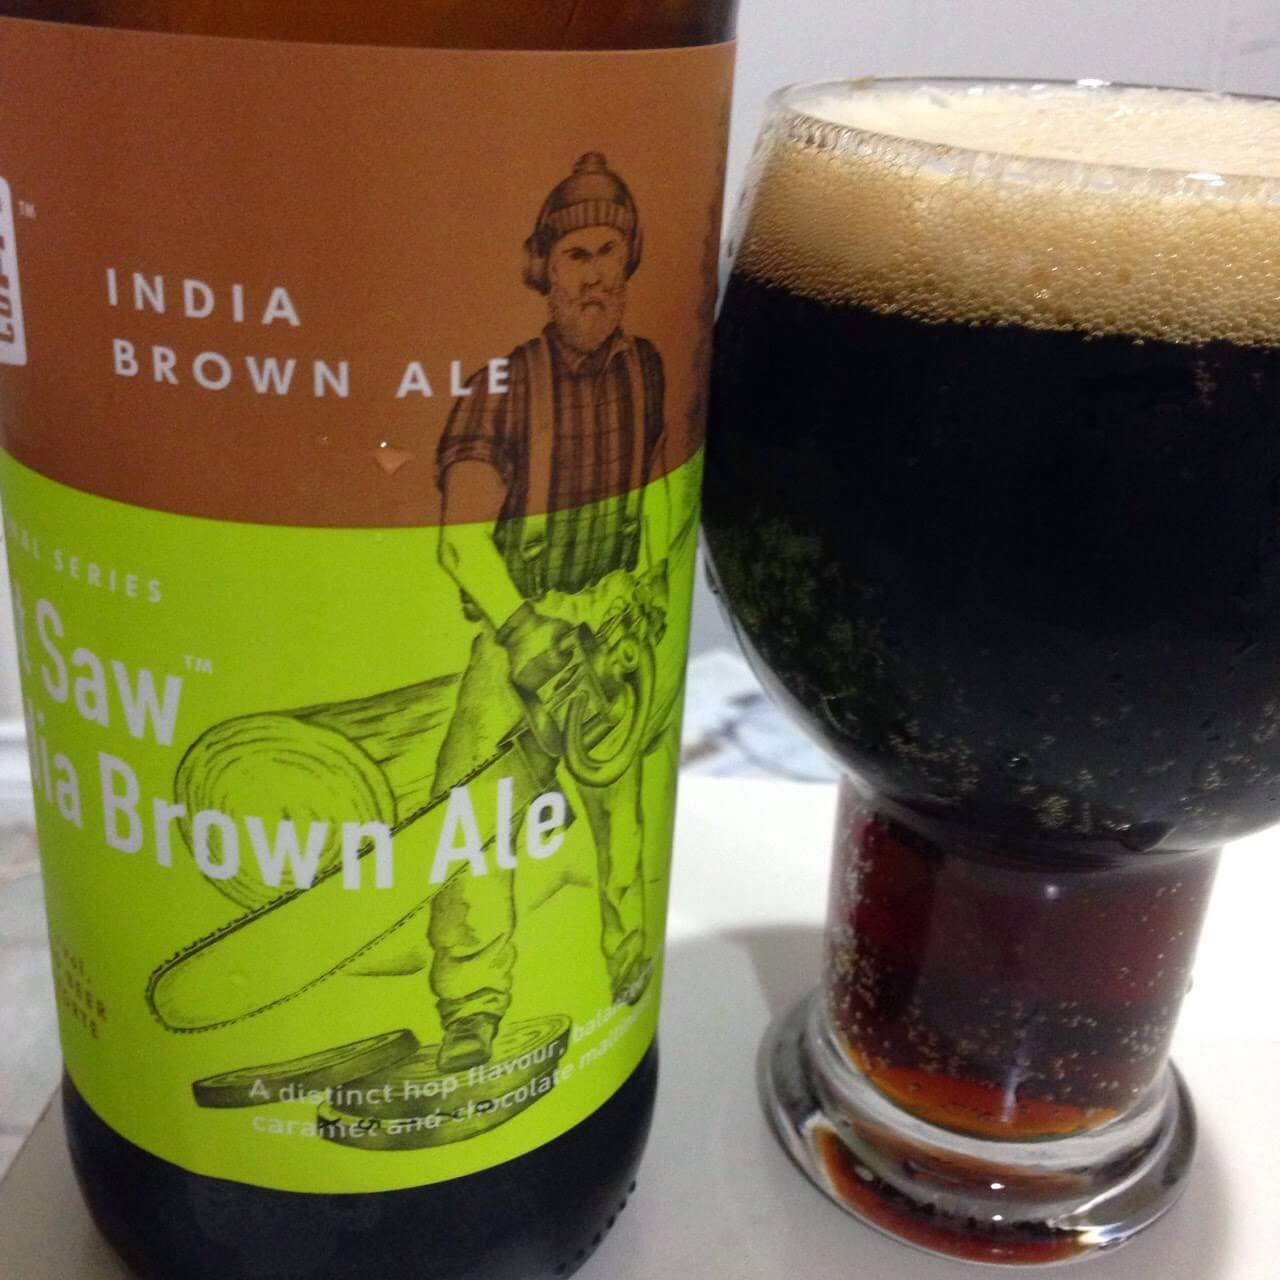 Fernie India Brown Ale